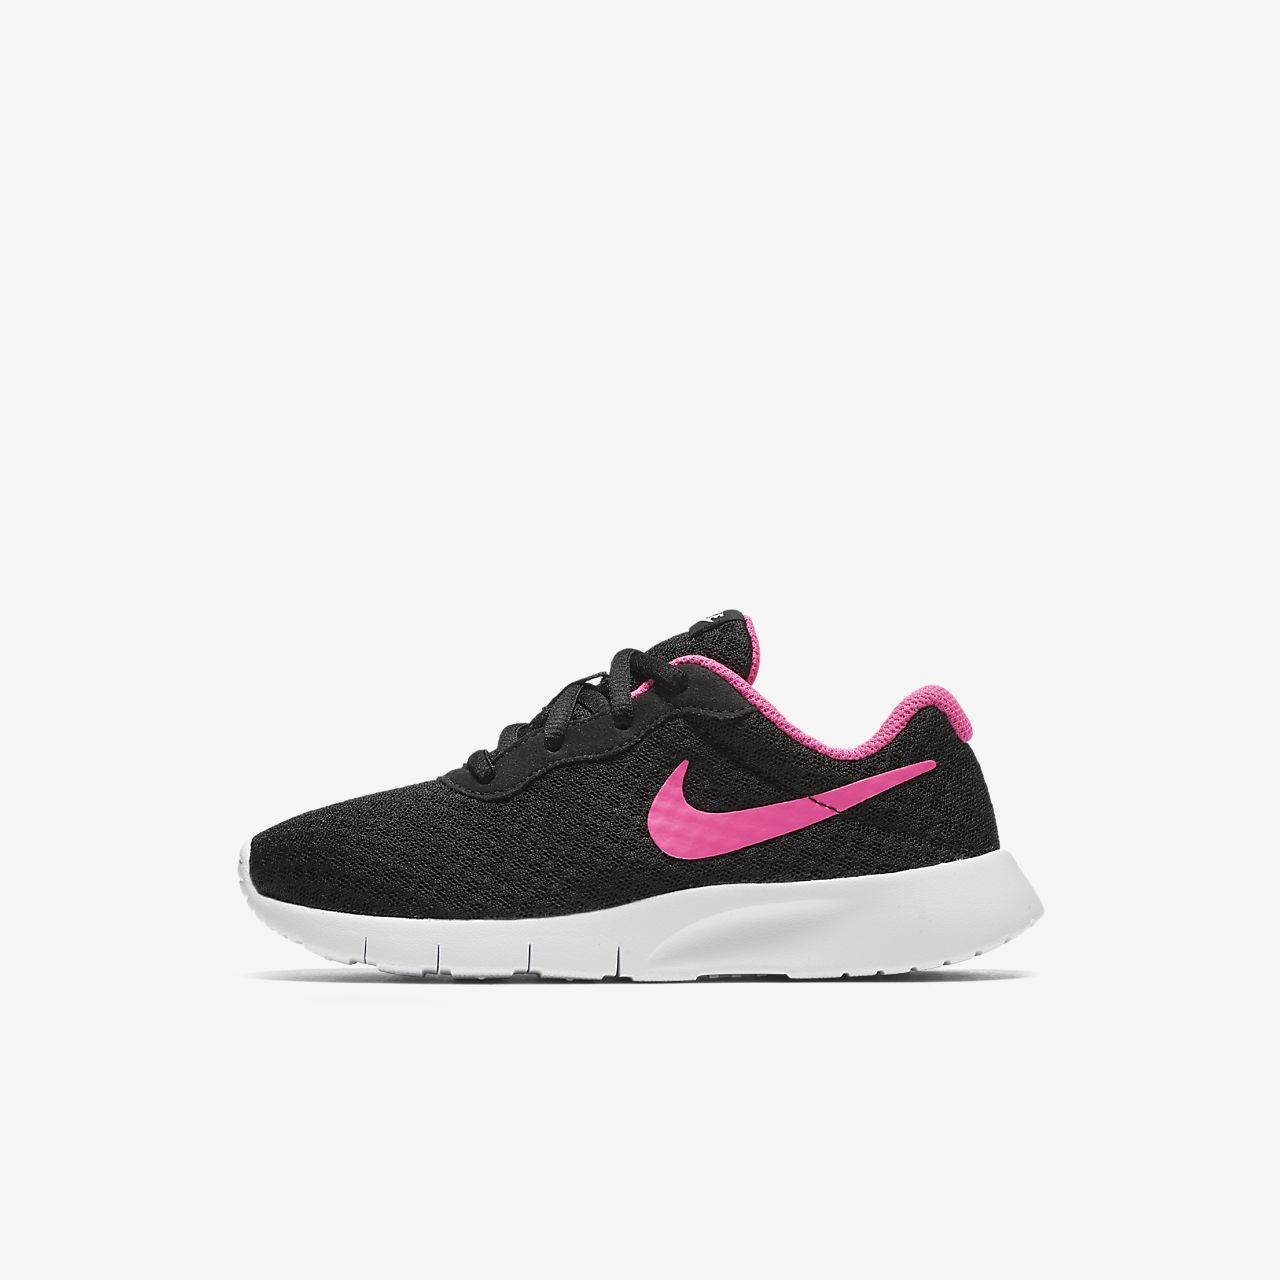 Nike Tanjun Racer Girls Running Shoes Black/White/Pink qW7883R